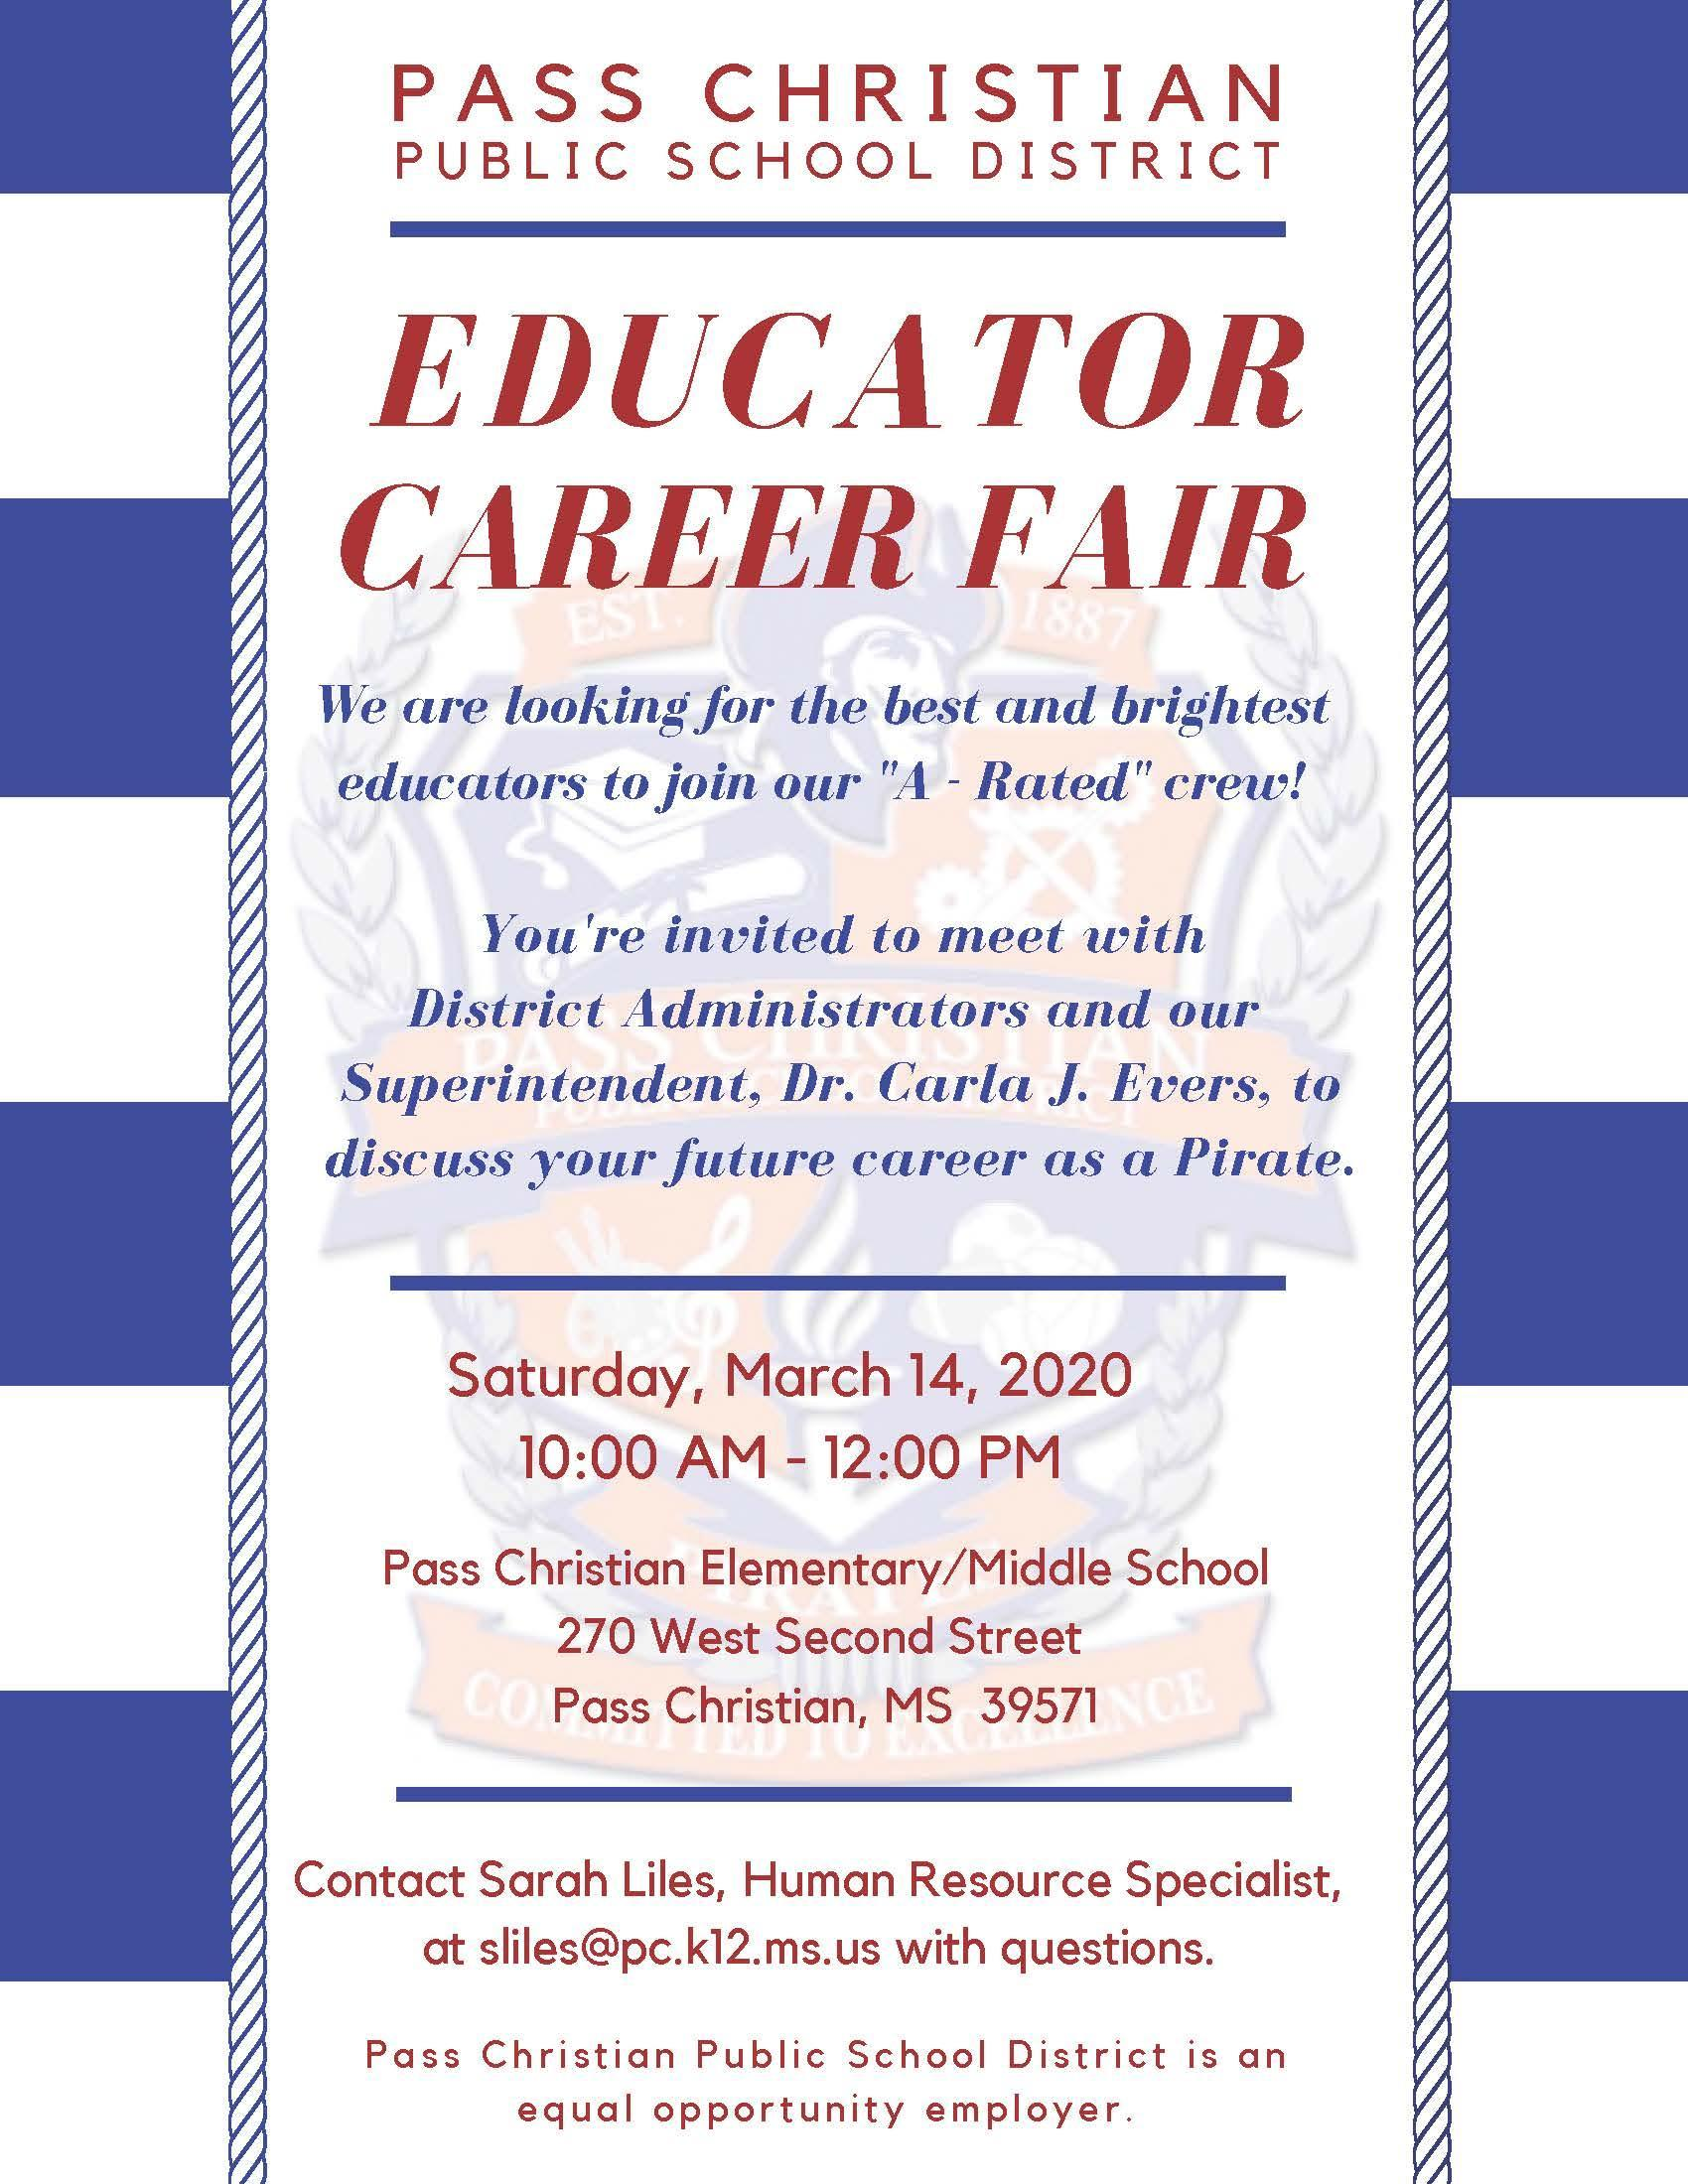 Educator Career Fair Invitation for 03/14/2020 at 10:00 am.